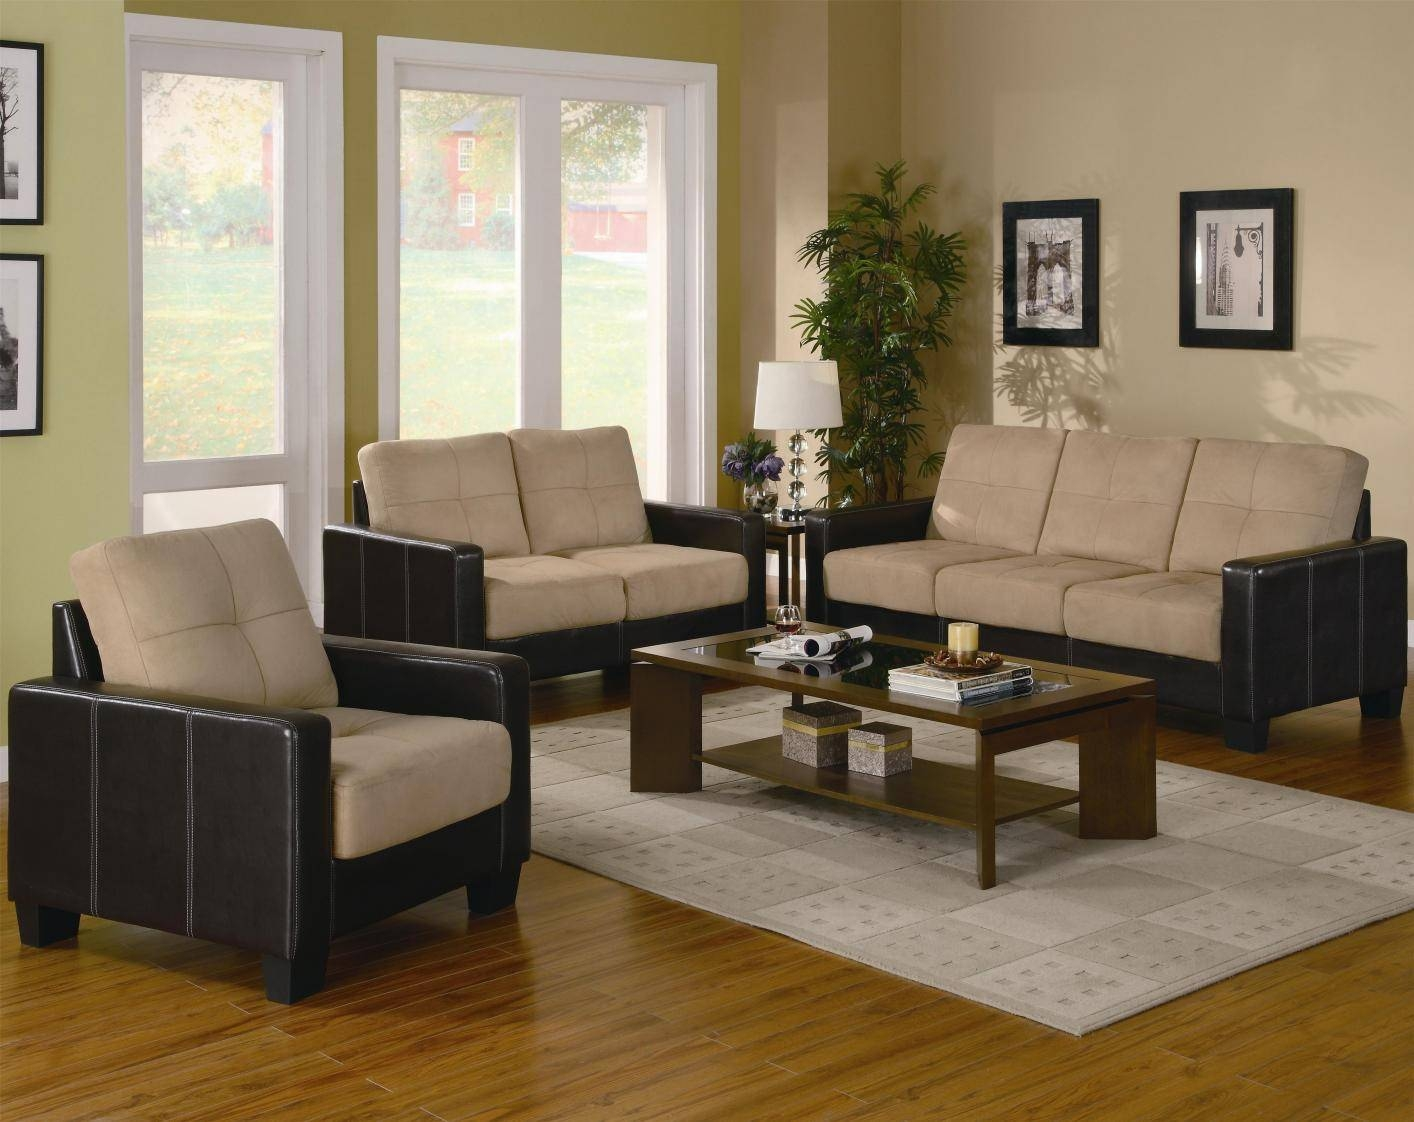 Coaster 500100 Beige Leather Sofa Loveseat And Chair Set - Steal-A intended for Sofa Loveseat and Chair Set (Image 10 of 30)